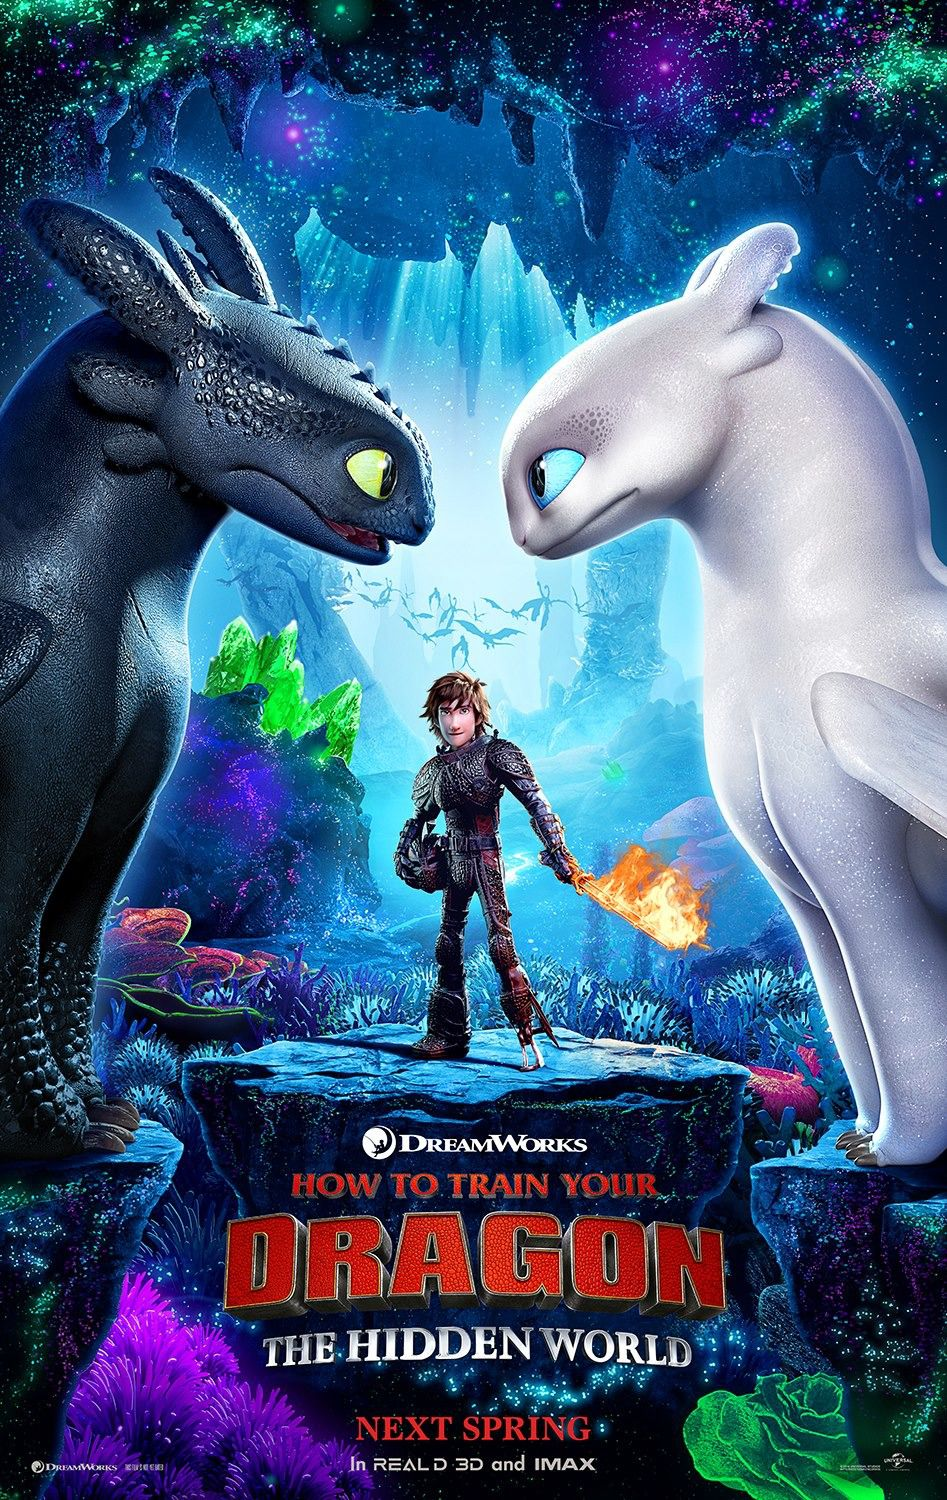 Dragon Trainer 3 - How to Train Your Dragon the Hidden World (2019) - animated film poster